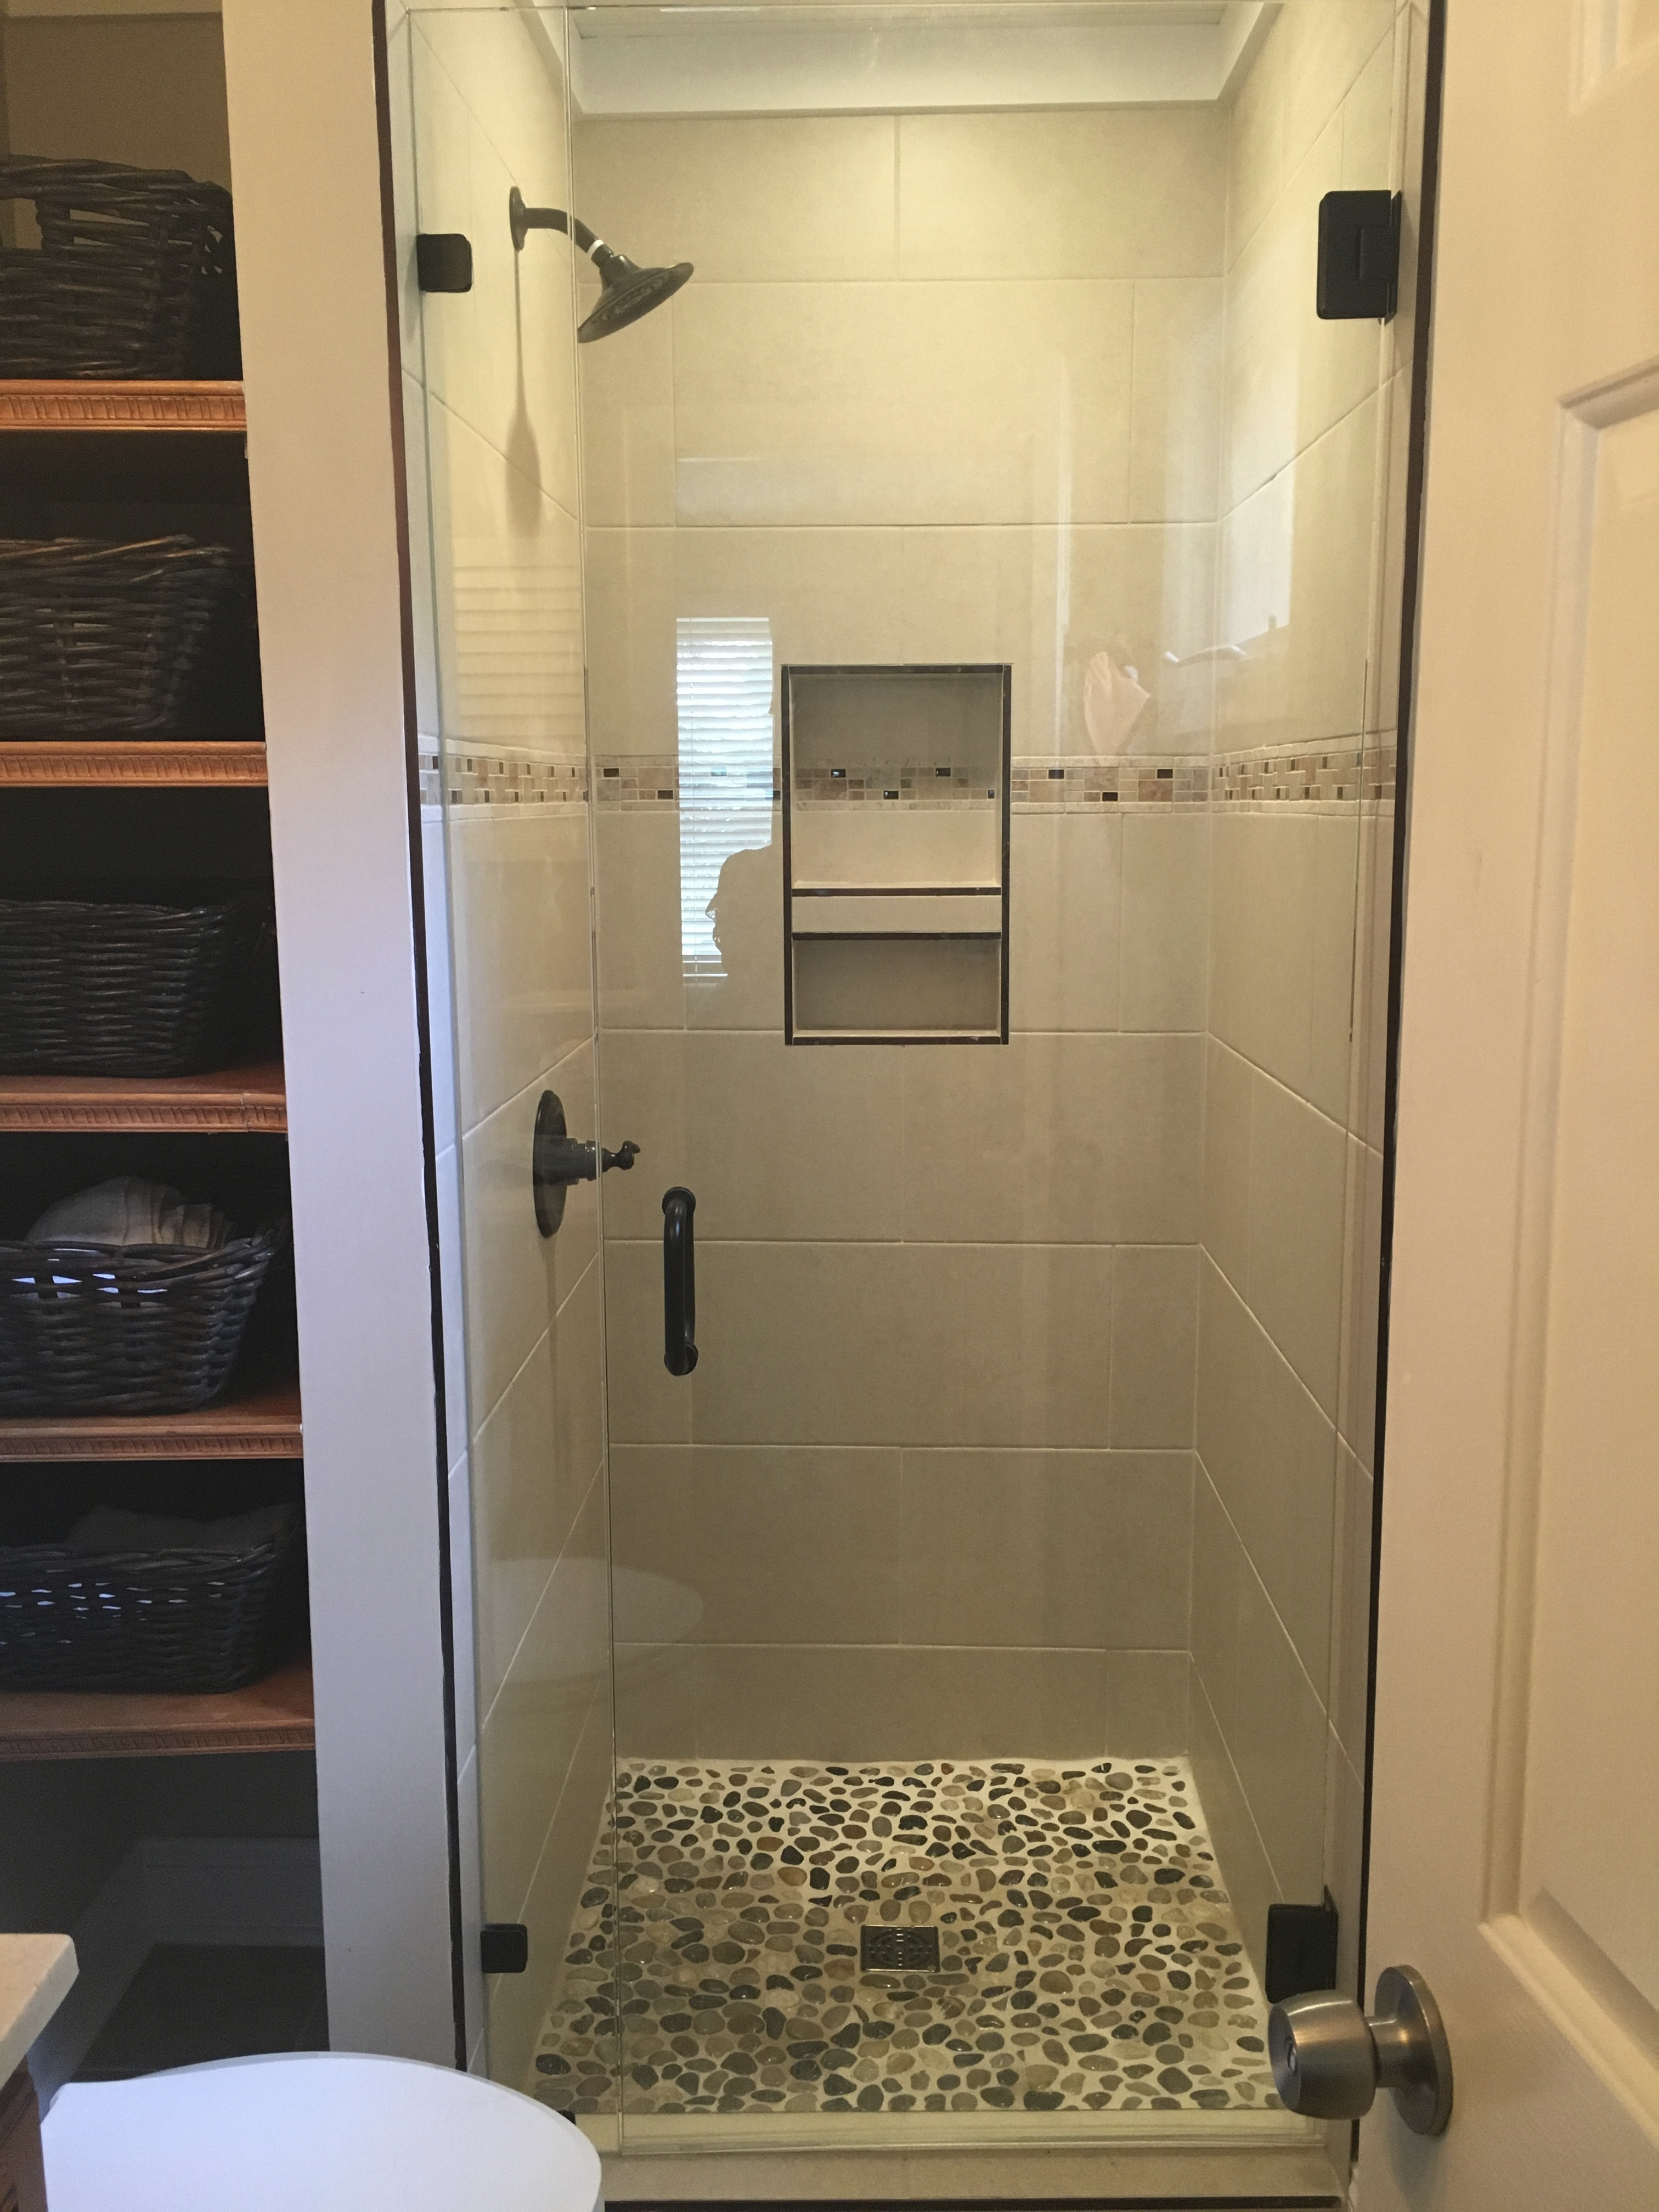 The newly updated master bathroom is en suite and has a walk in shower with a spa like pebble floor.